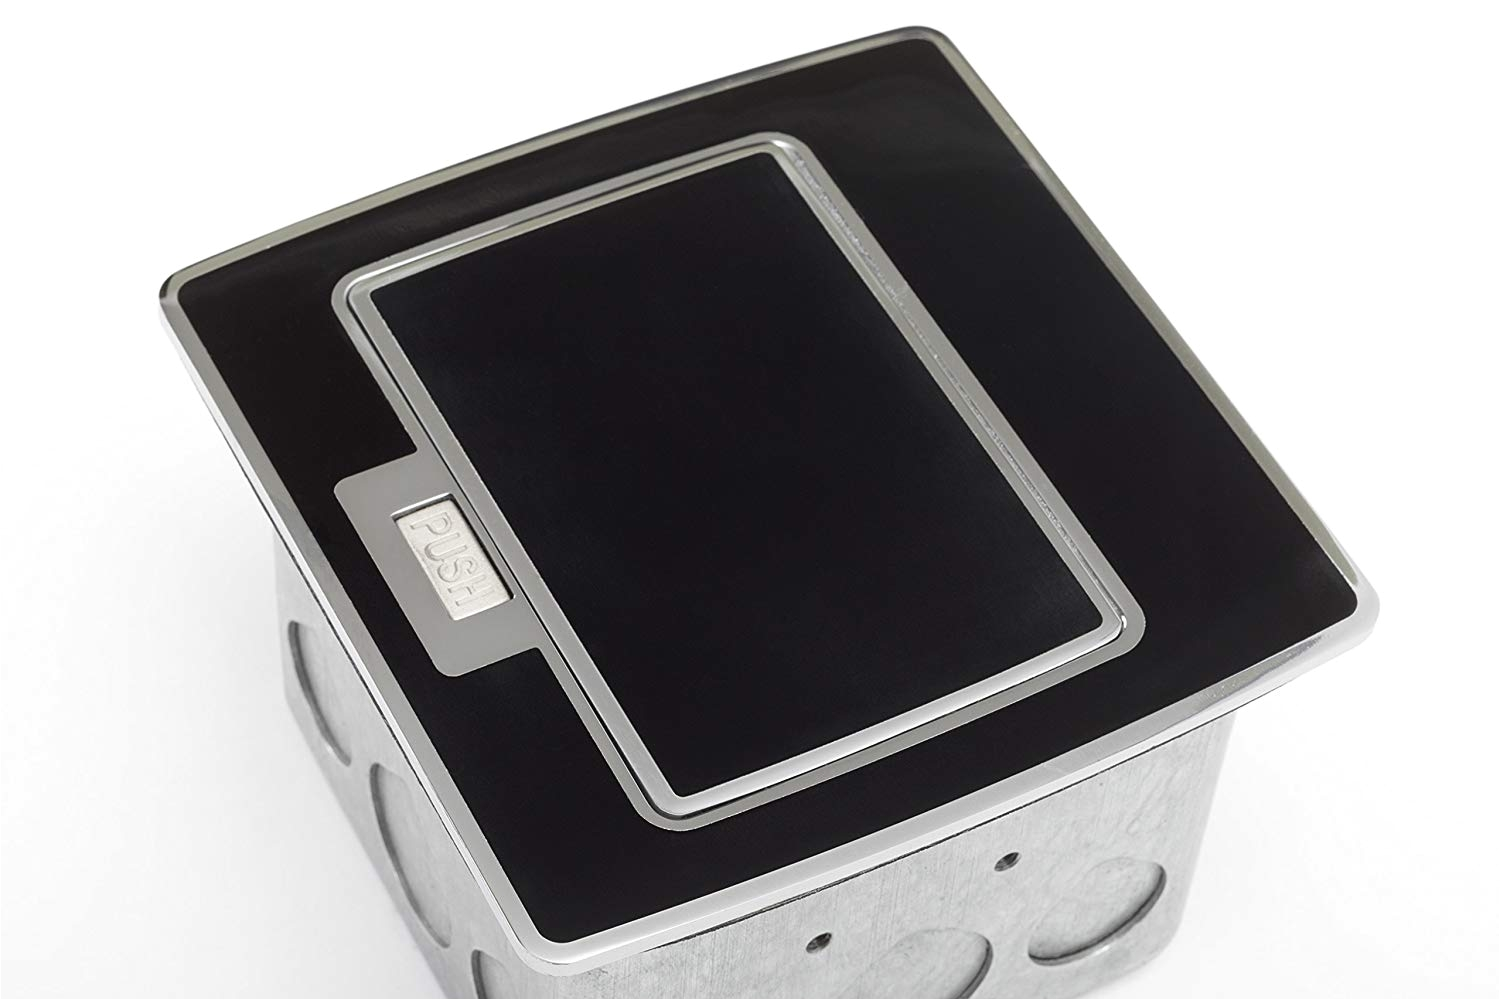 Lew Floor Receptacles Lew Electric Pufp Ct Bk 2usb Pop Up Counter top Plate with 15 Amp